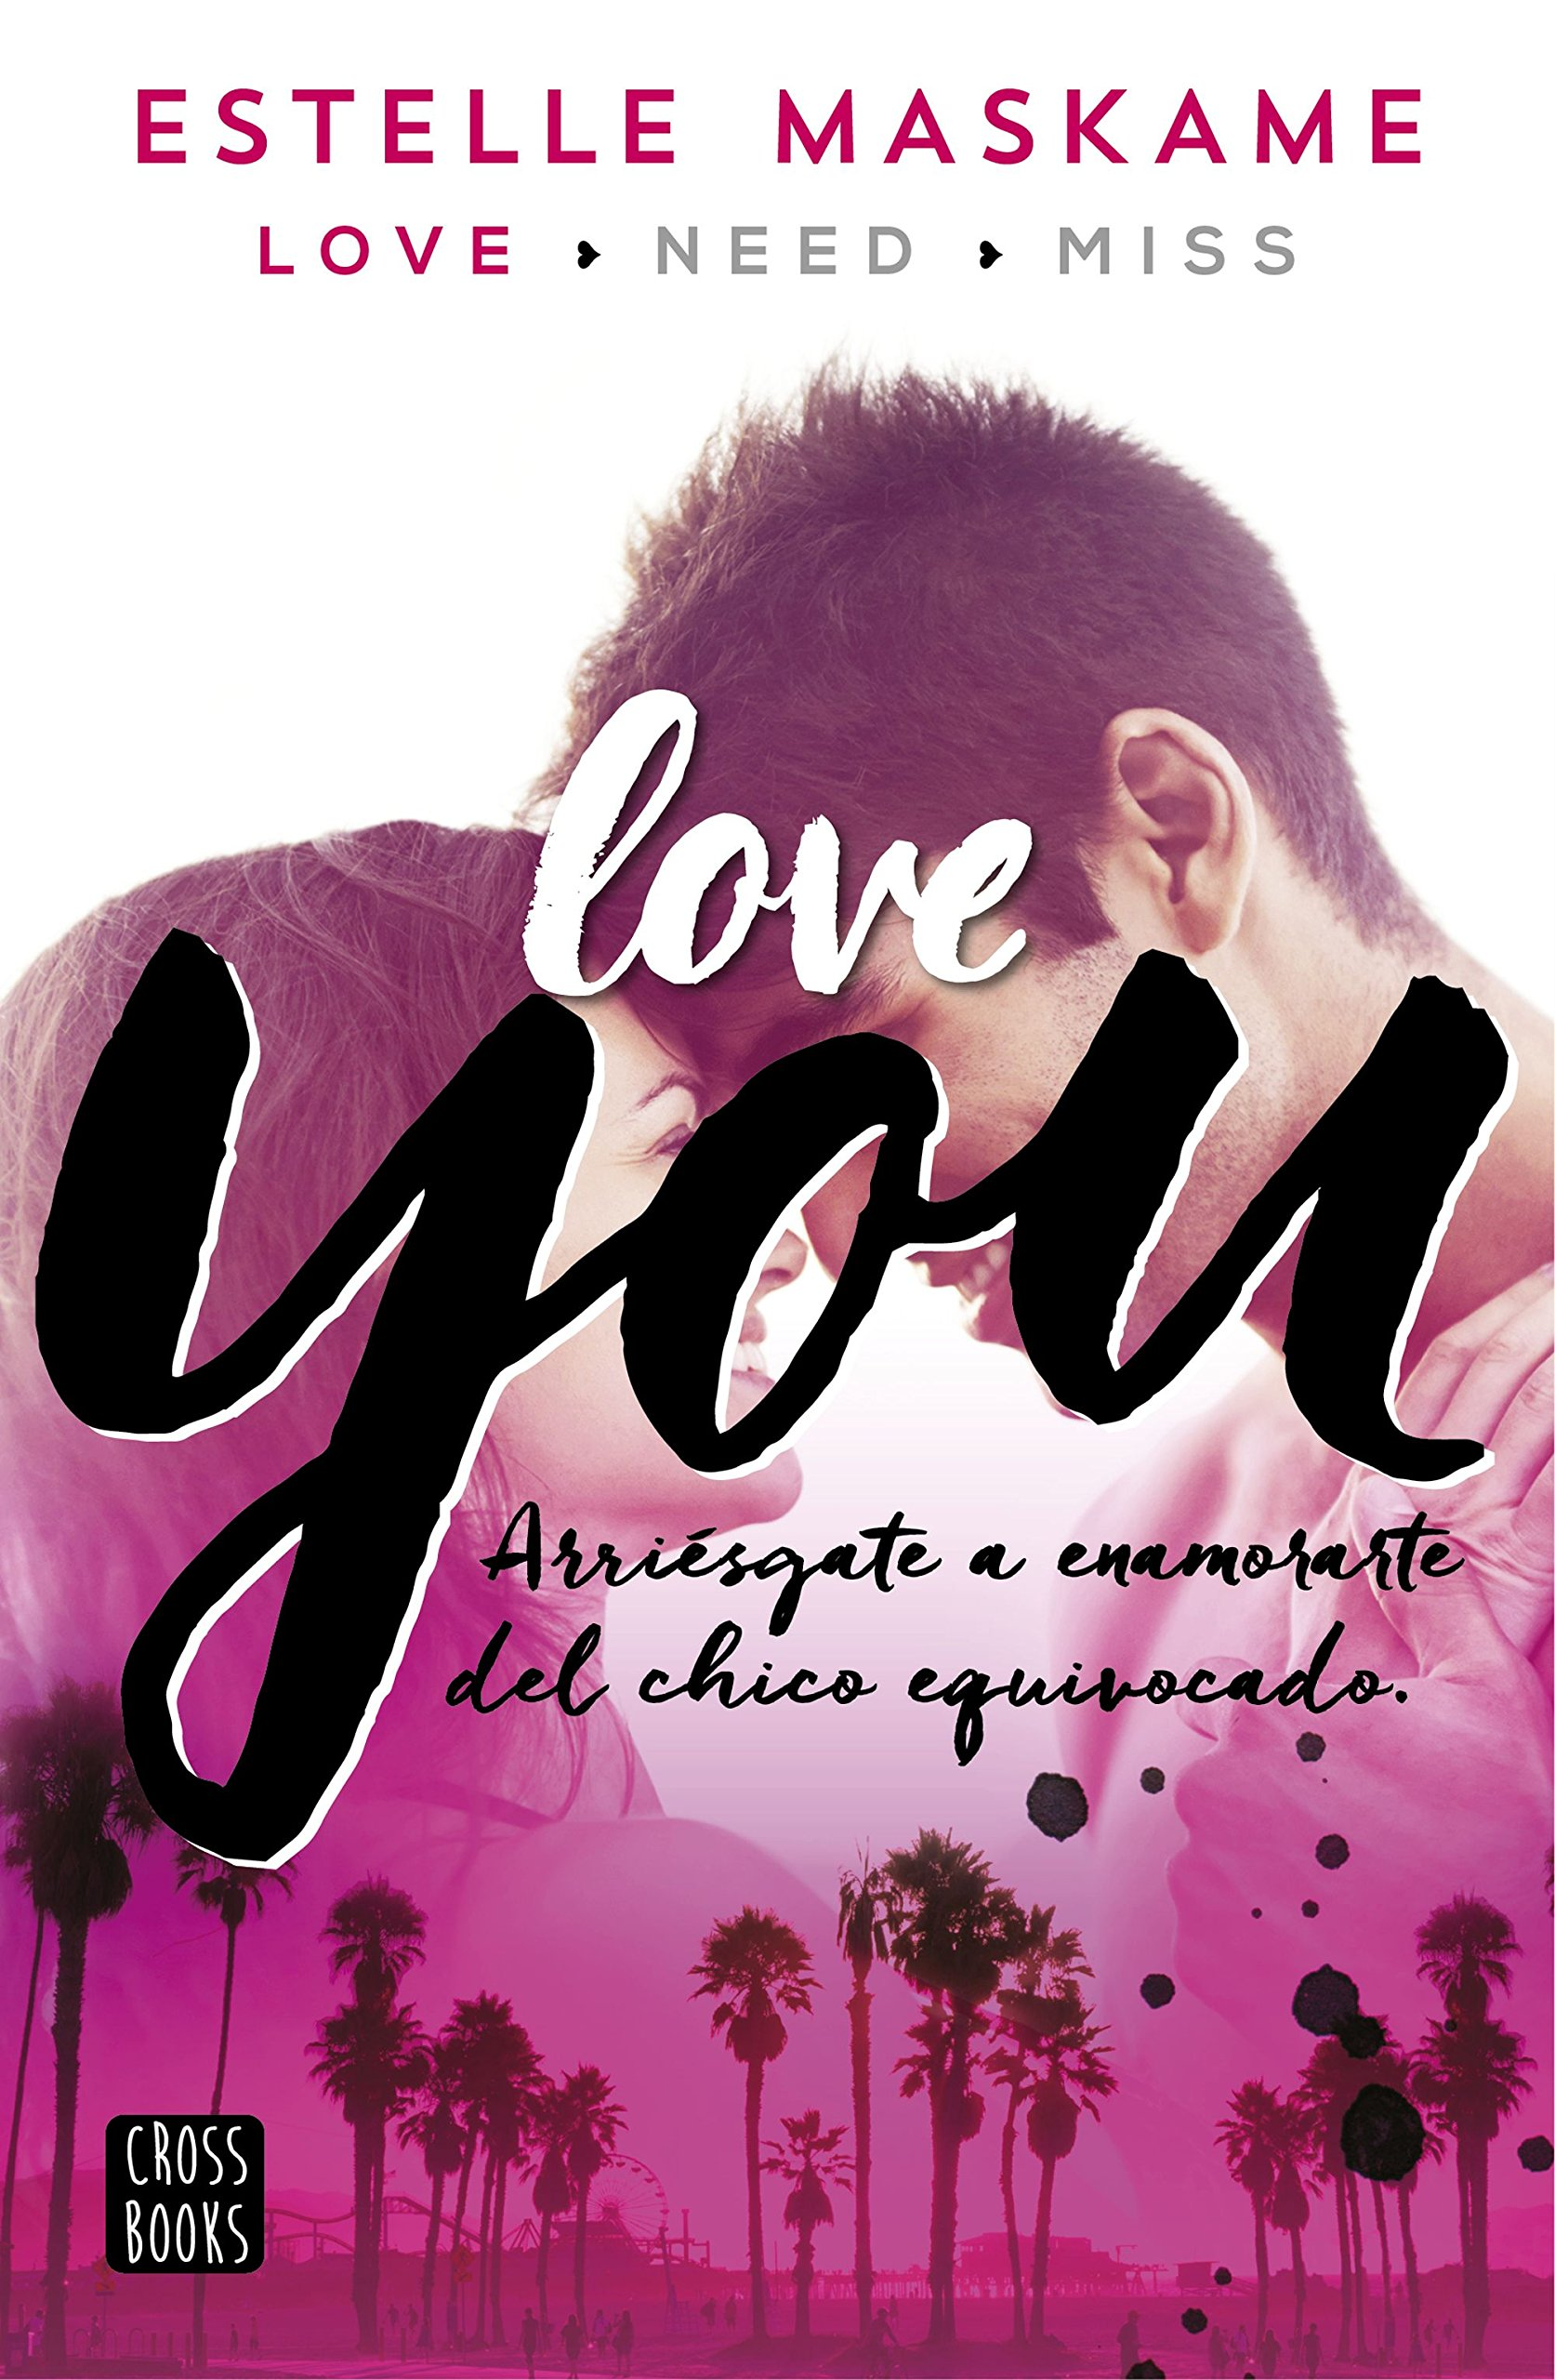 You 1. Love you: You 1 (Crossbooks): Amazon.es: Maskame, Estelle, Cuevas Morales, Silvia: Libros